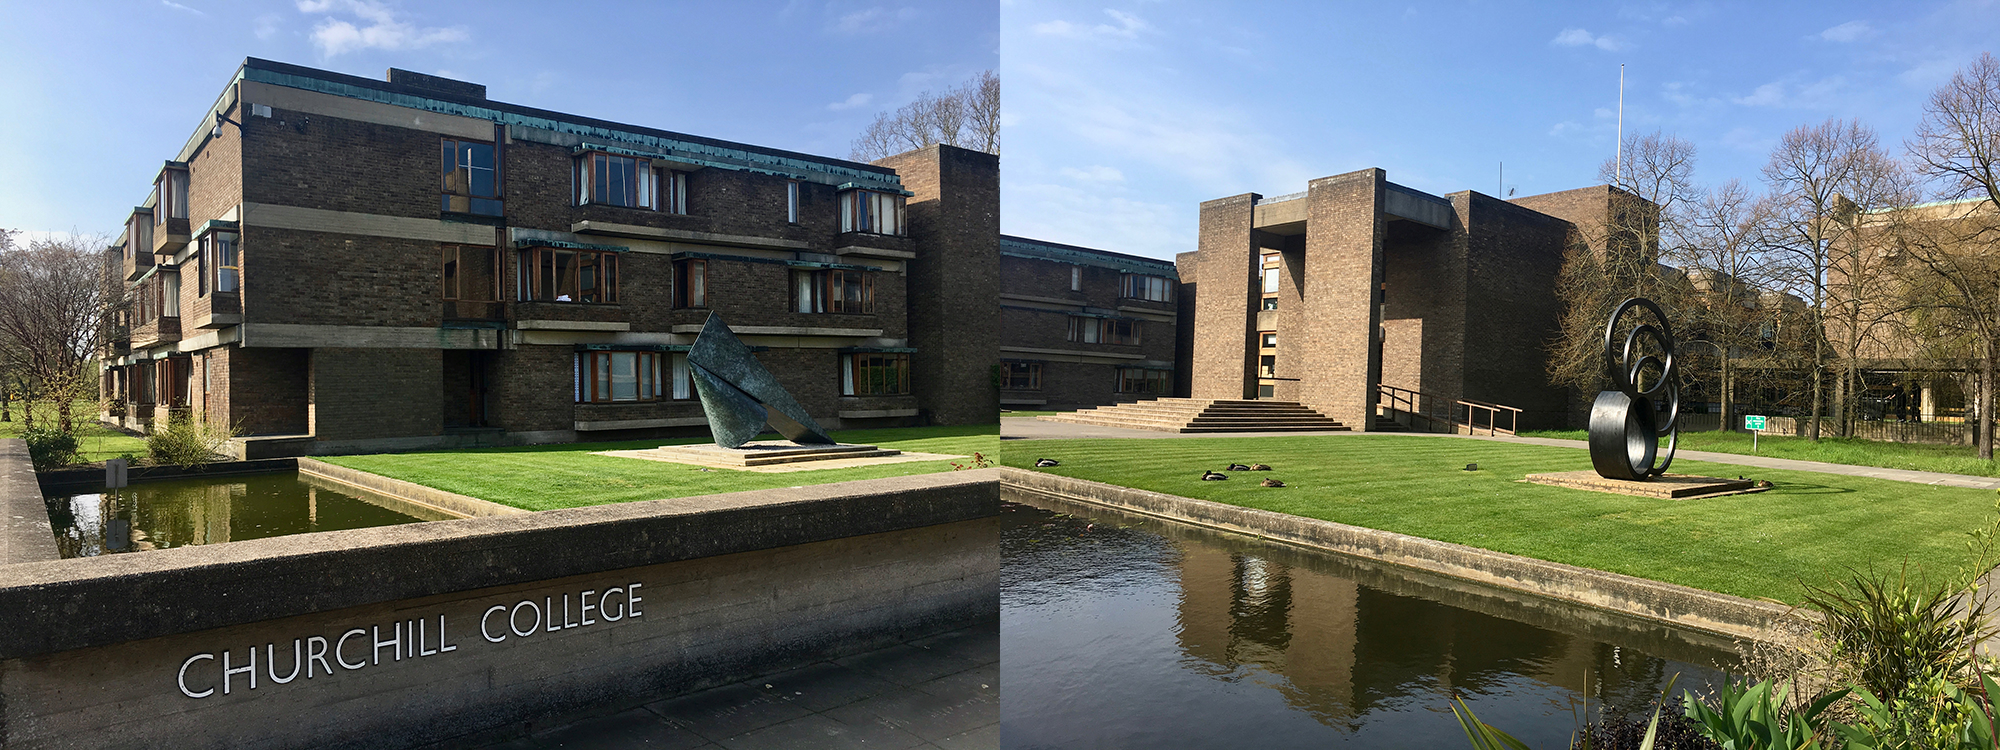 Churchill College external architecture